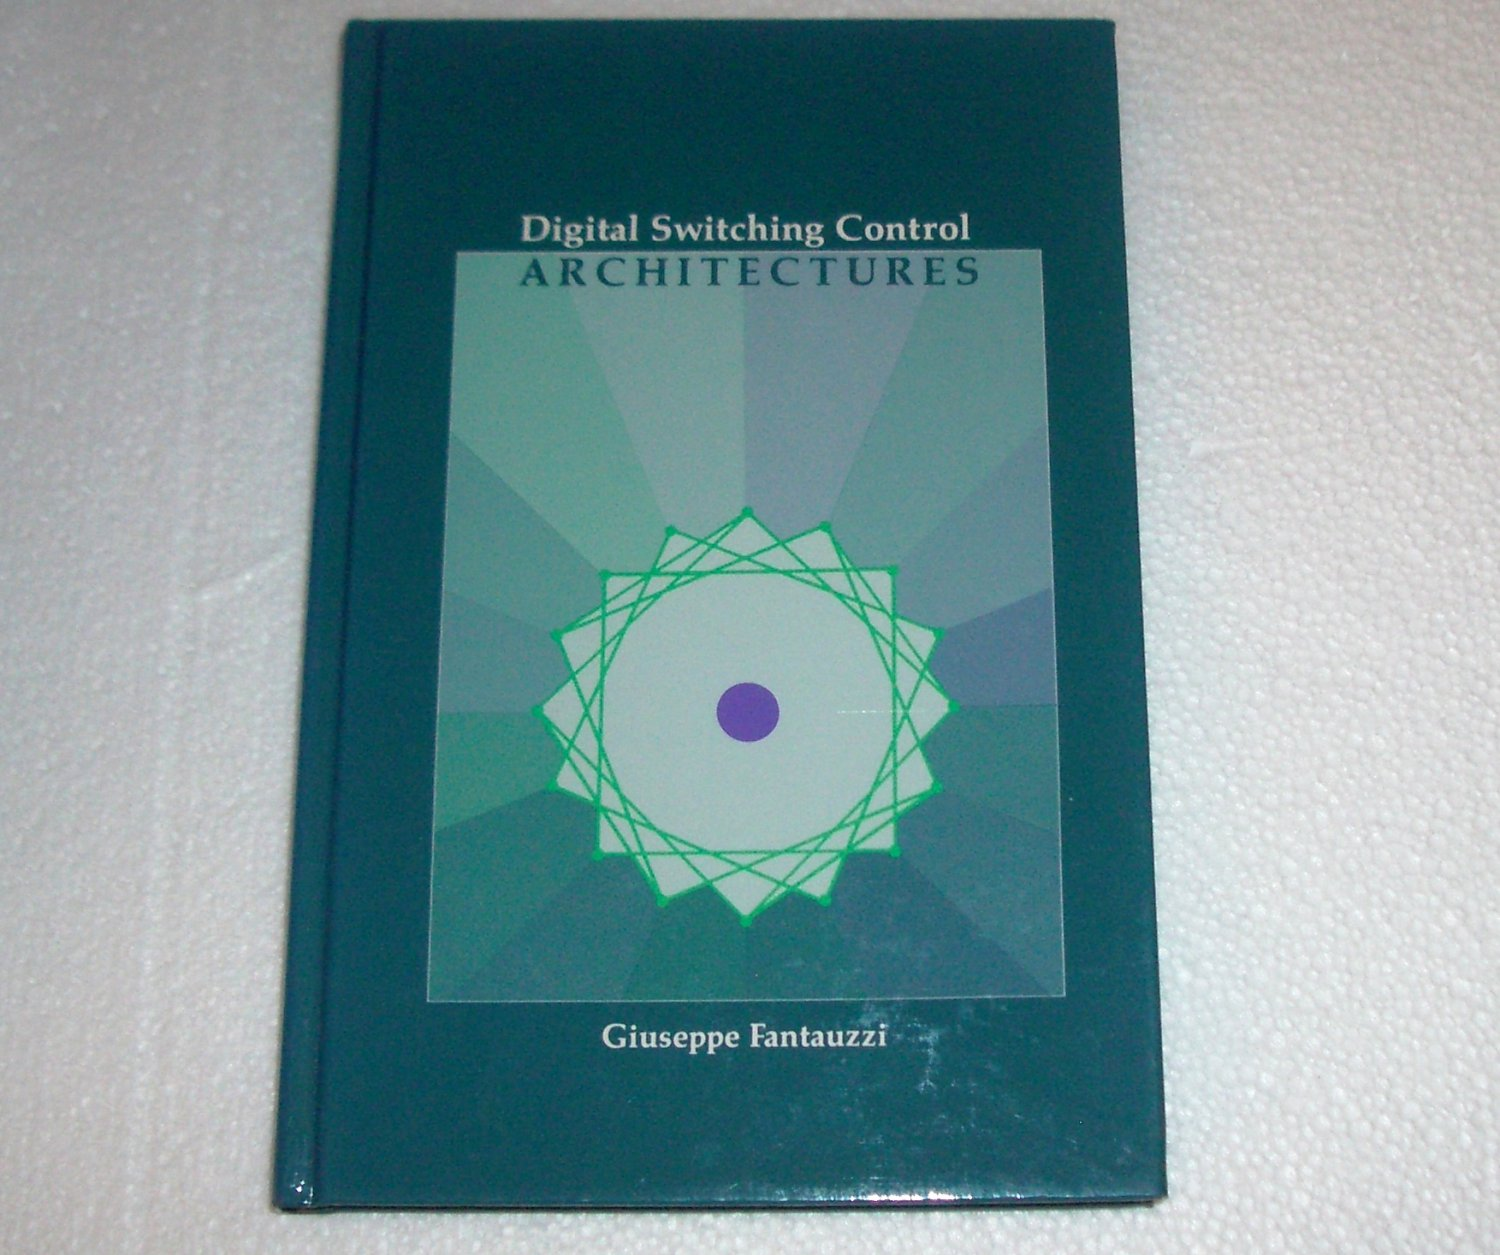 Digital Switching Control Architectures by Giuseppe Fantauzzi 1990 Hardcover